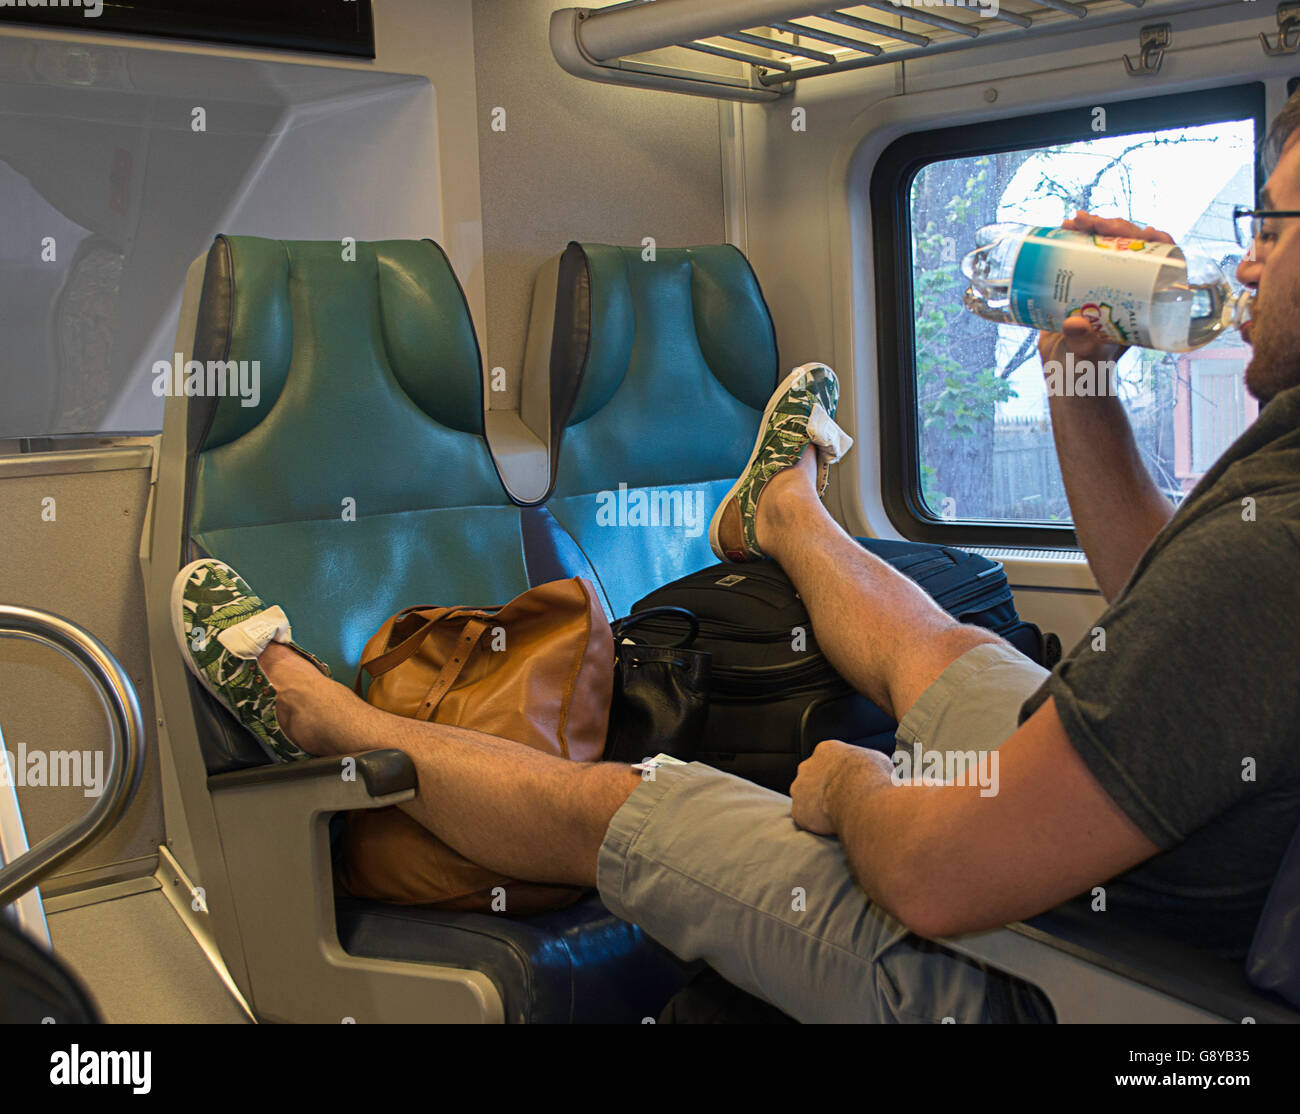 A rude man taking up too many seats on a train. - Stock Image